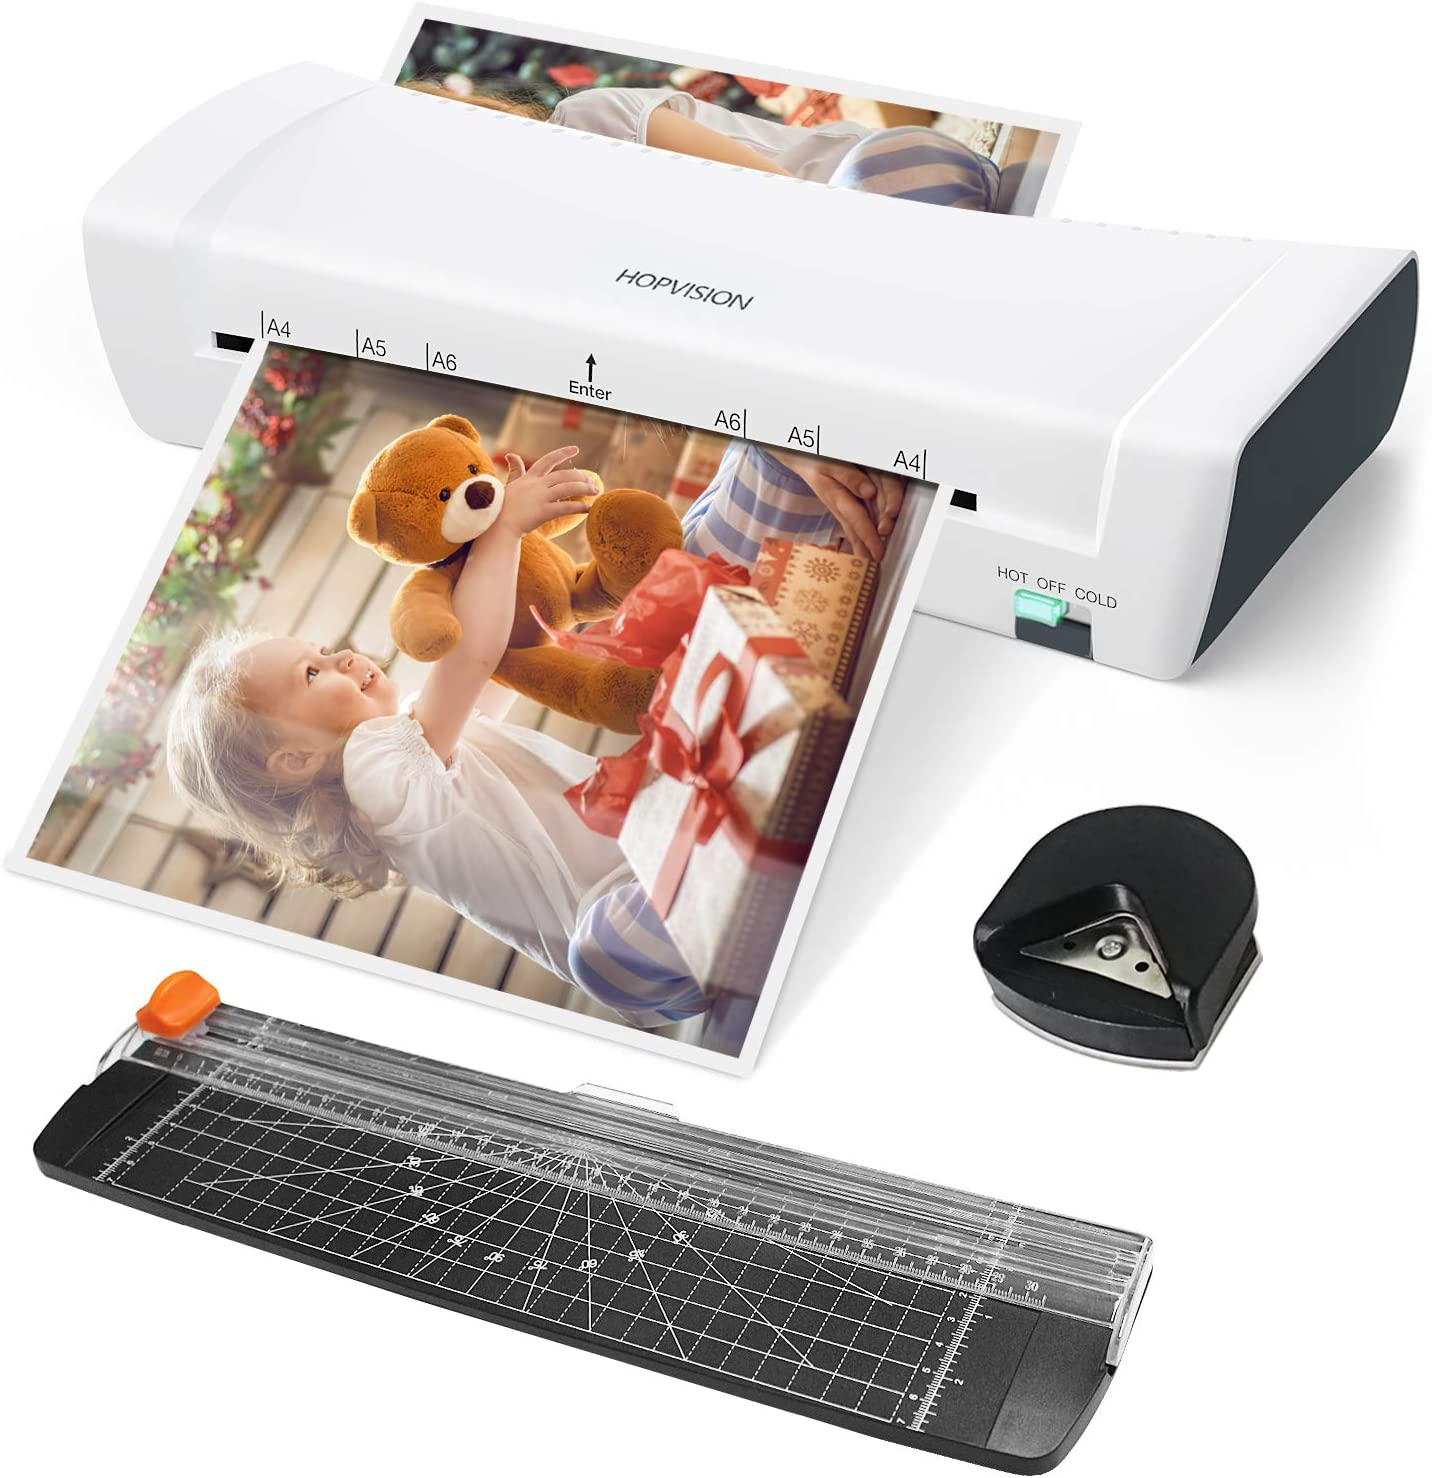 Laminator, HOPVISION A4 Laminator,4 in 1 Portable Laminating Machine with Hot and Cold Settings,9 inches,30 Laminating Pouches, Paper Trimmer, Corner Rounder